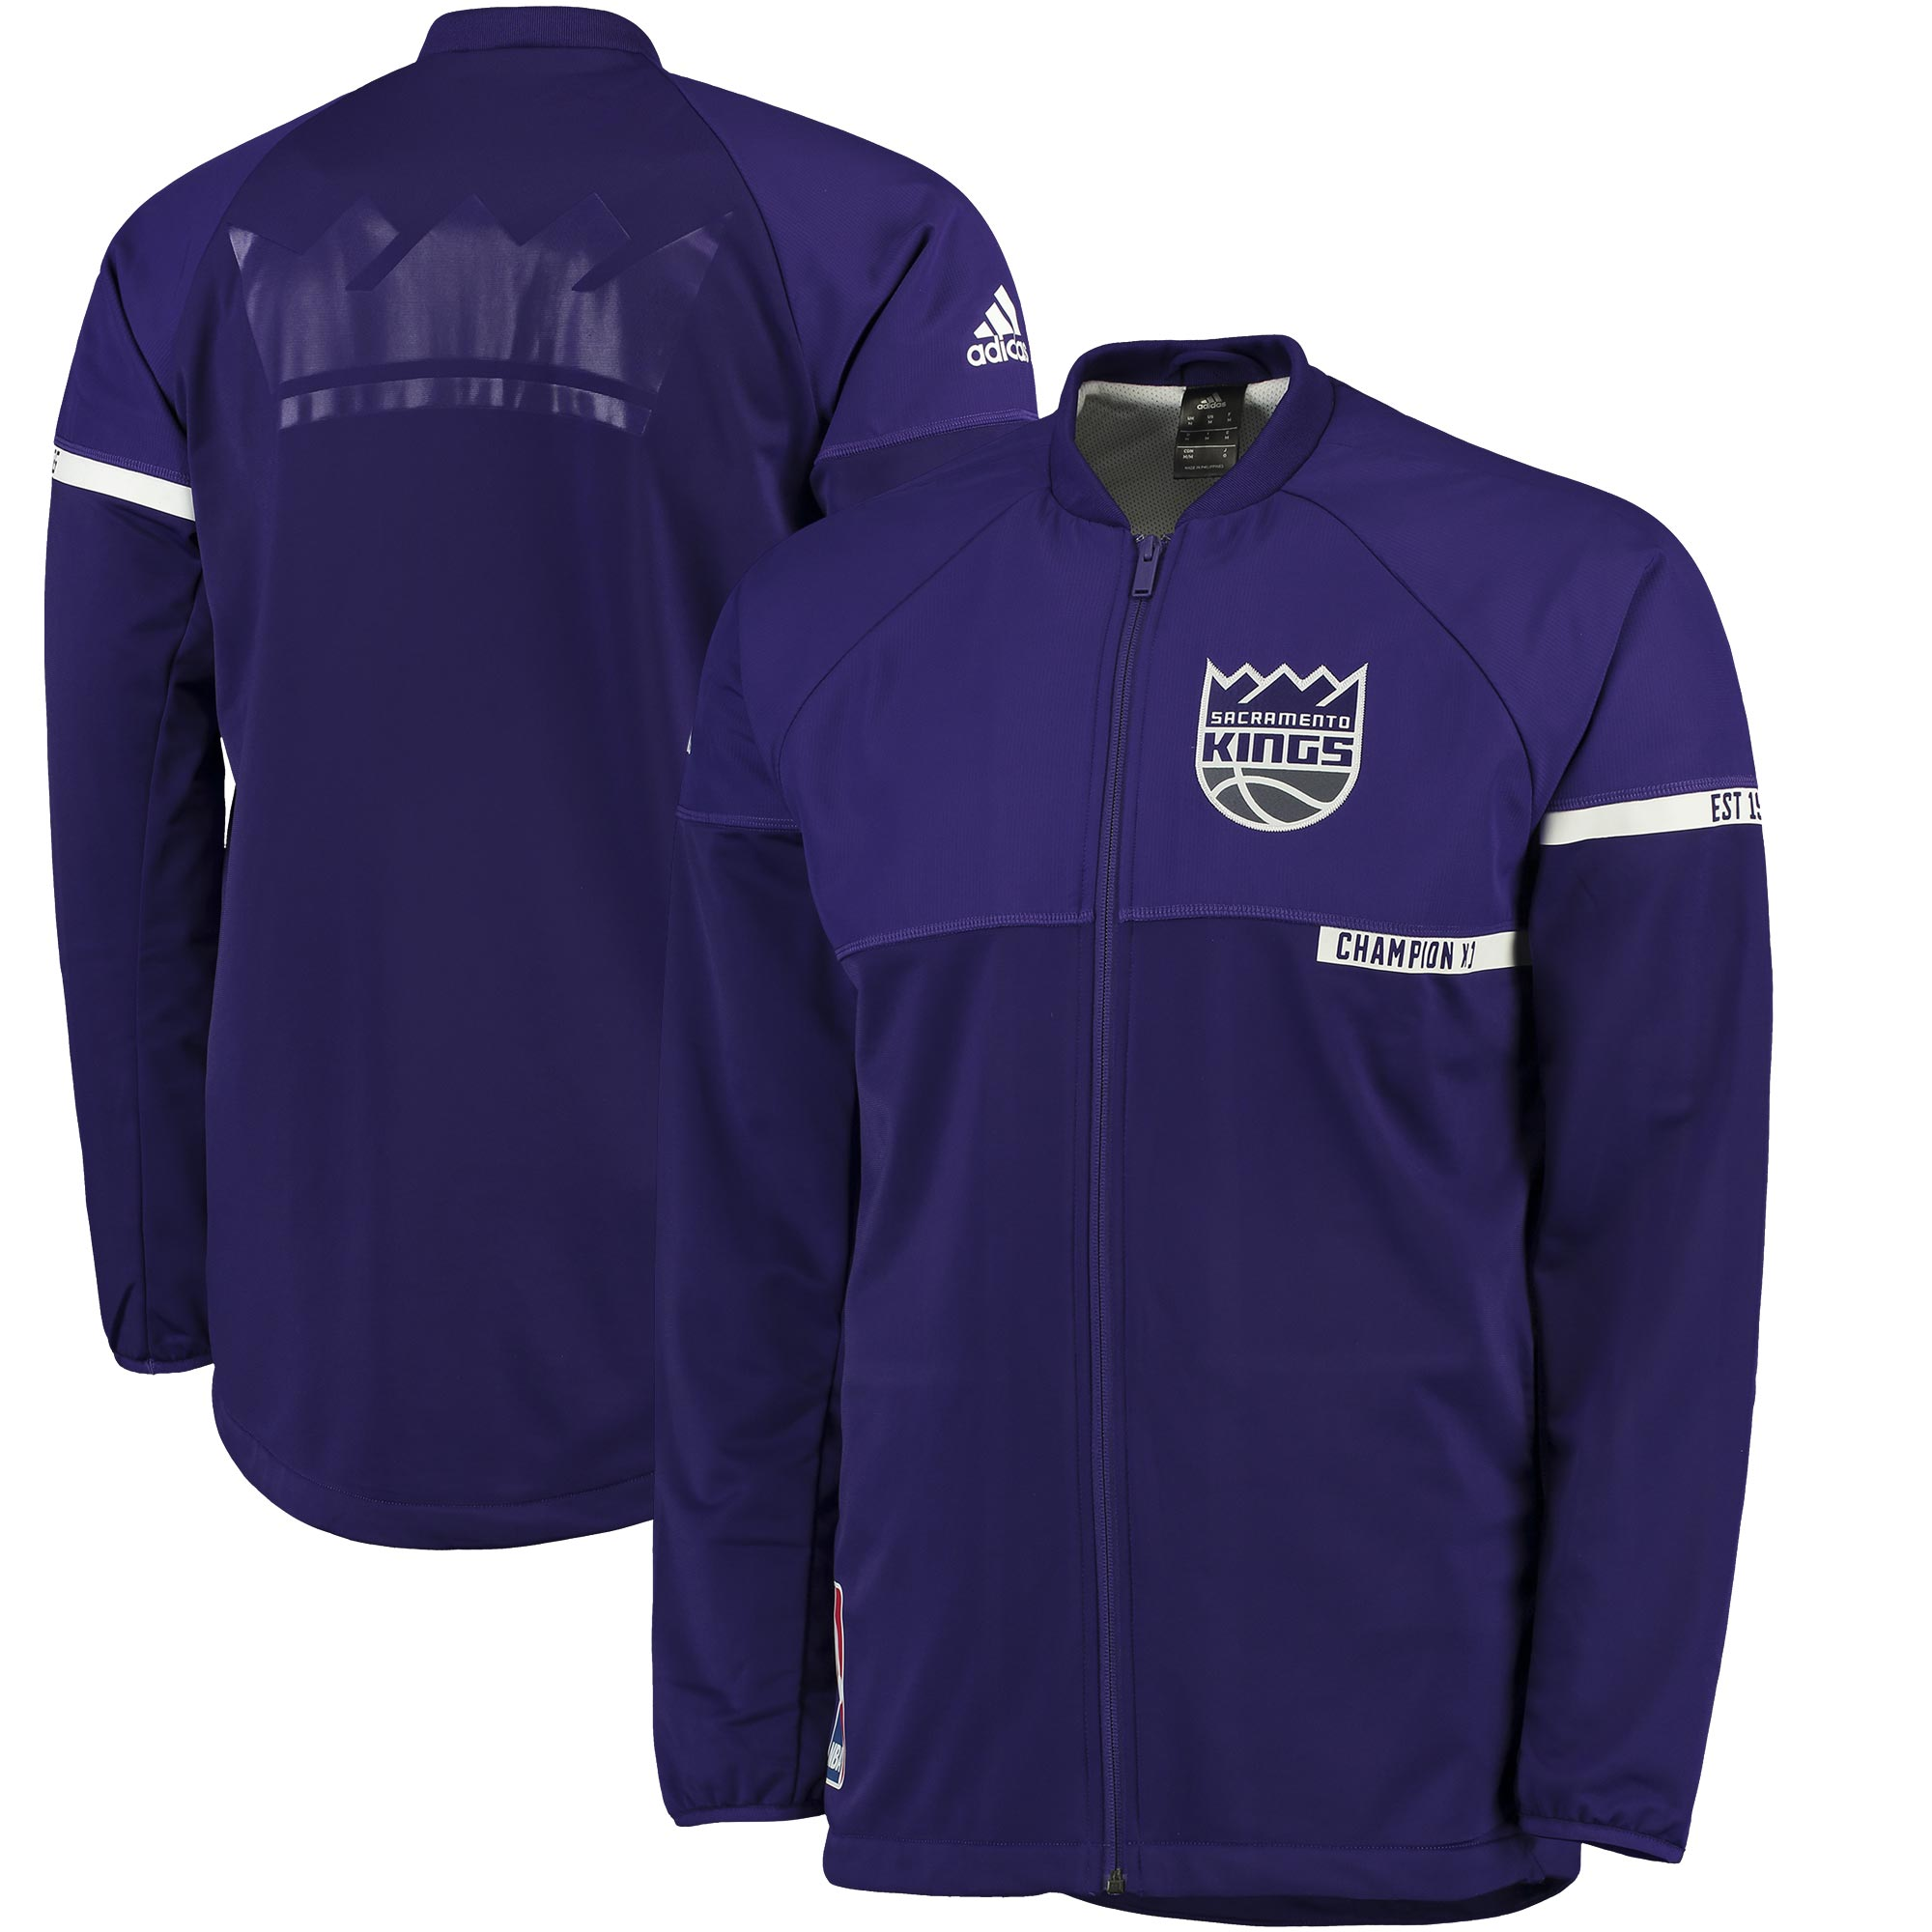 Sacramento Kings adidas 2016 On-Court Jacket - Purple